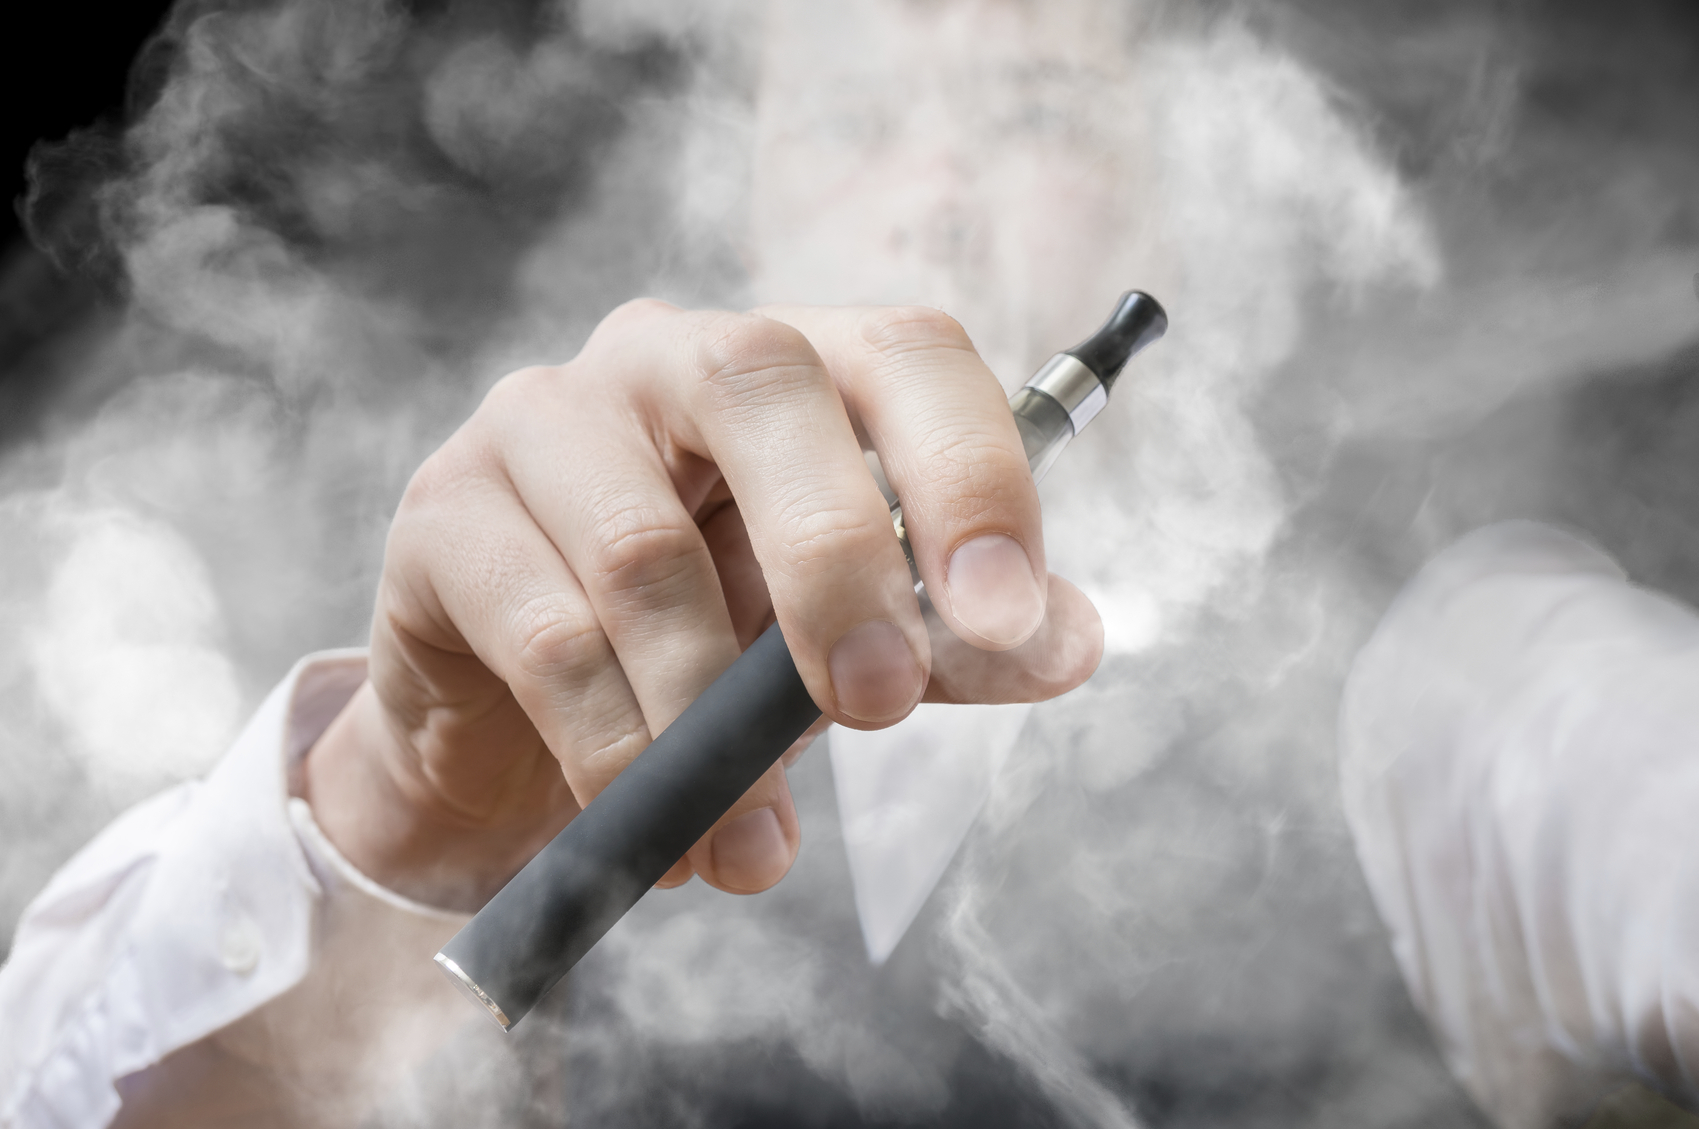 E-Cigarette Explosion and Burn Injuries Have Been Underestimated by Federal Agencies